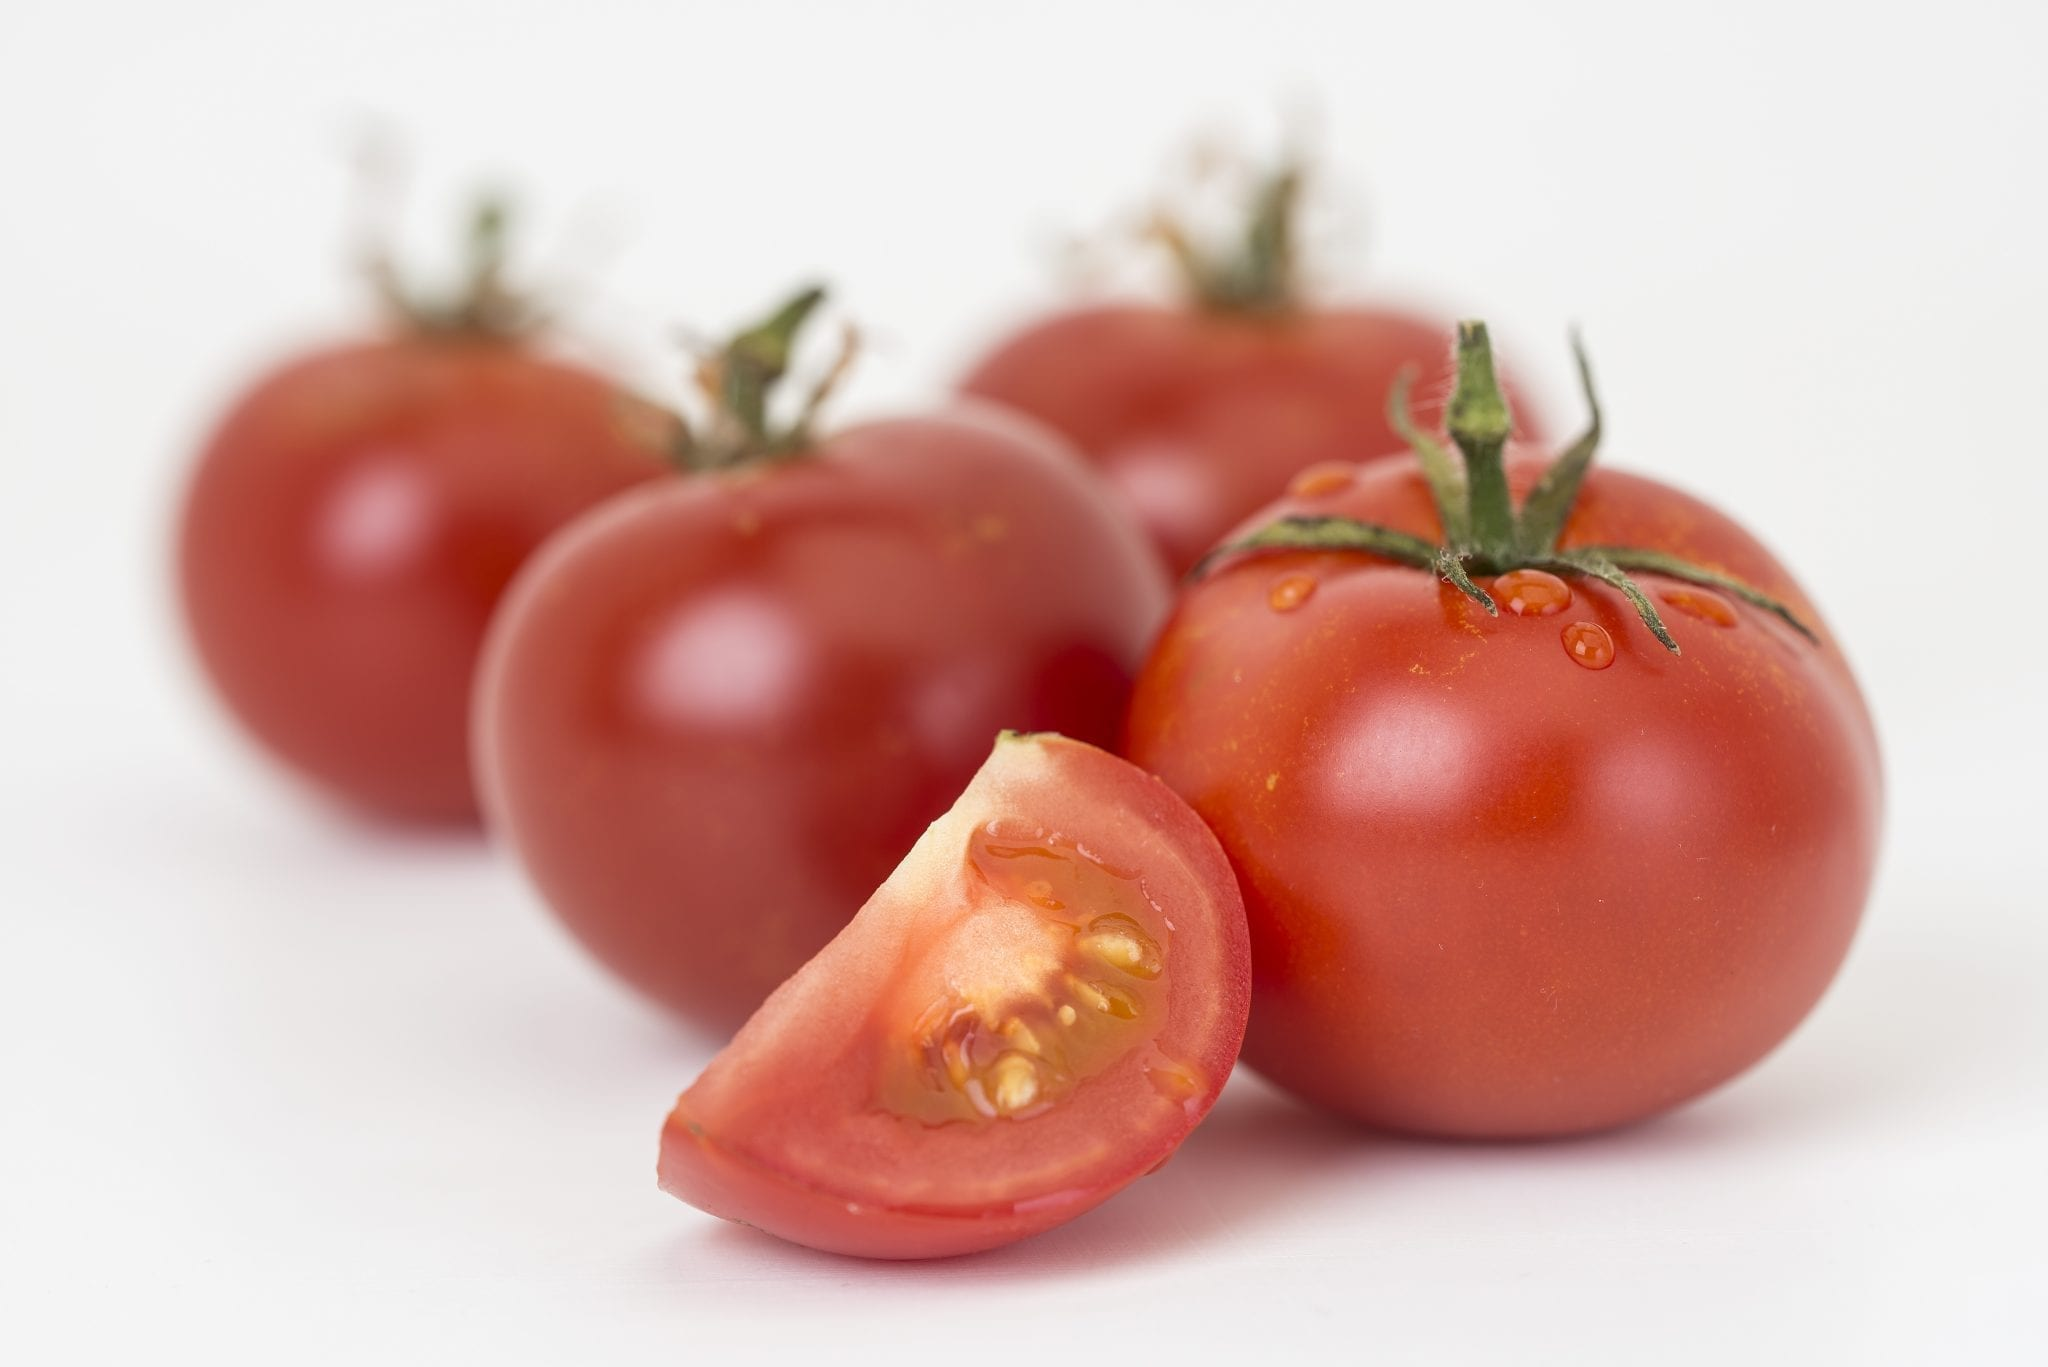 Scientists produce beneficial natural compounds in tomato